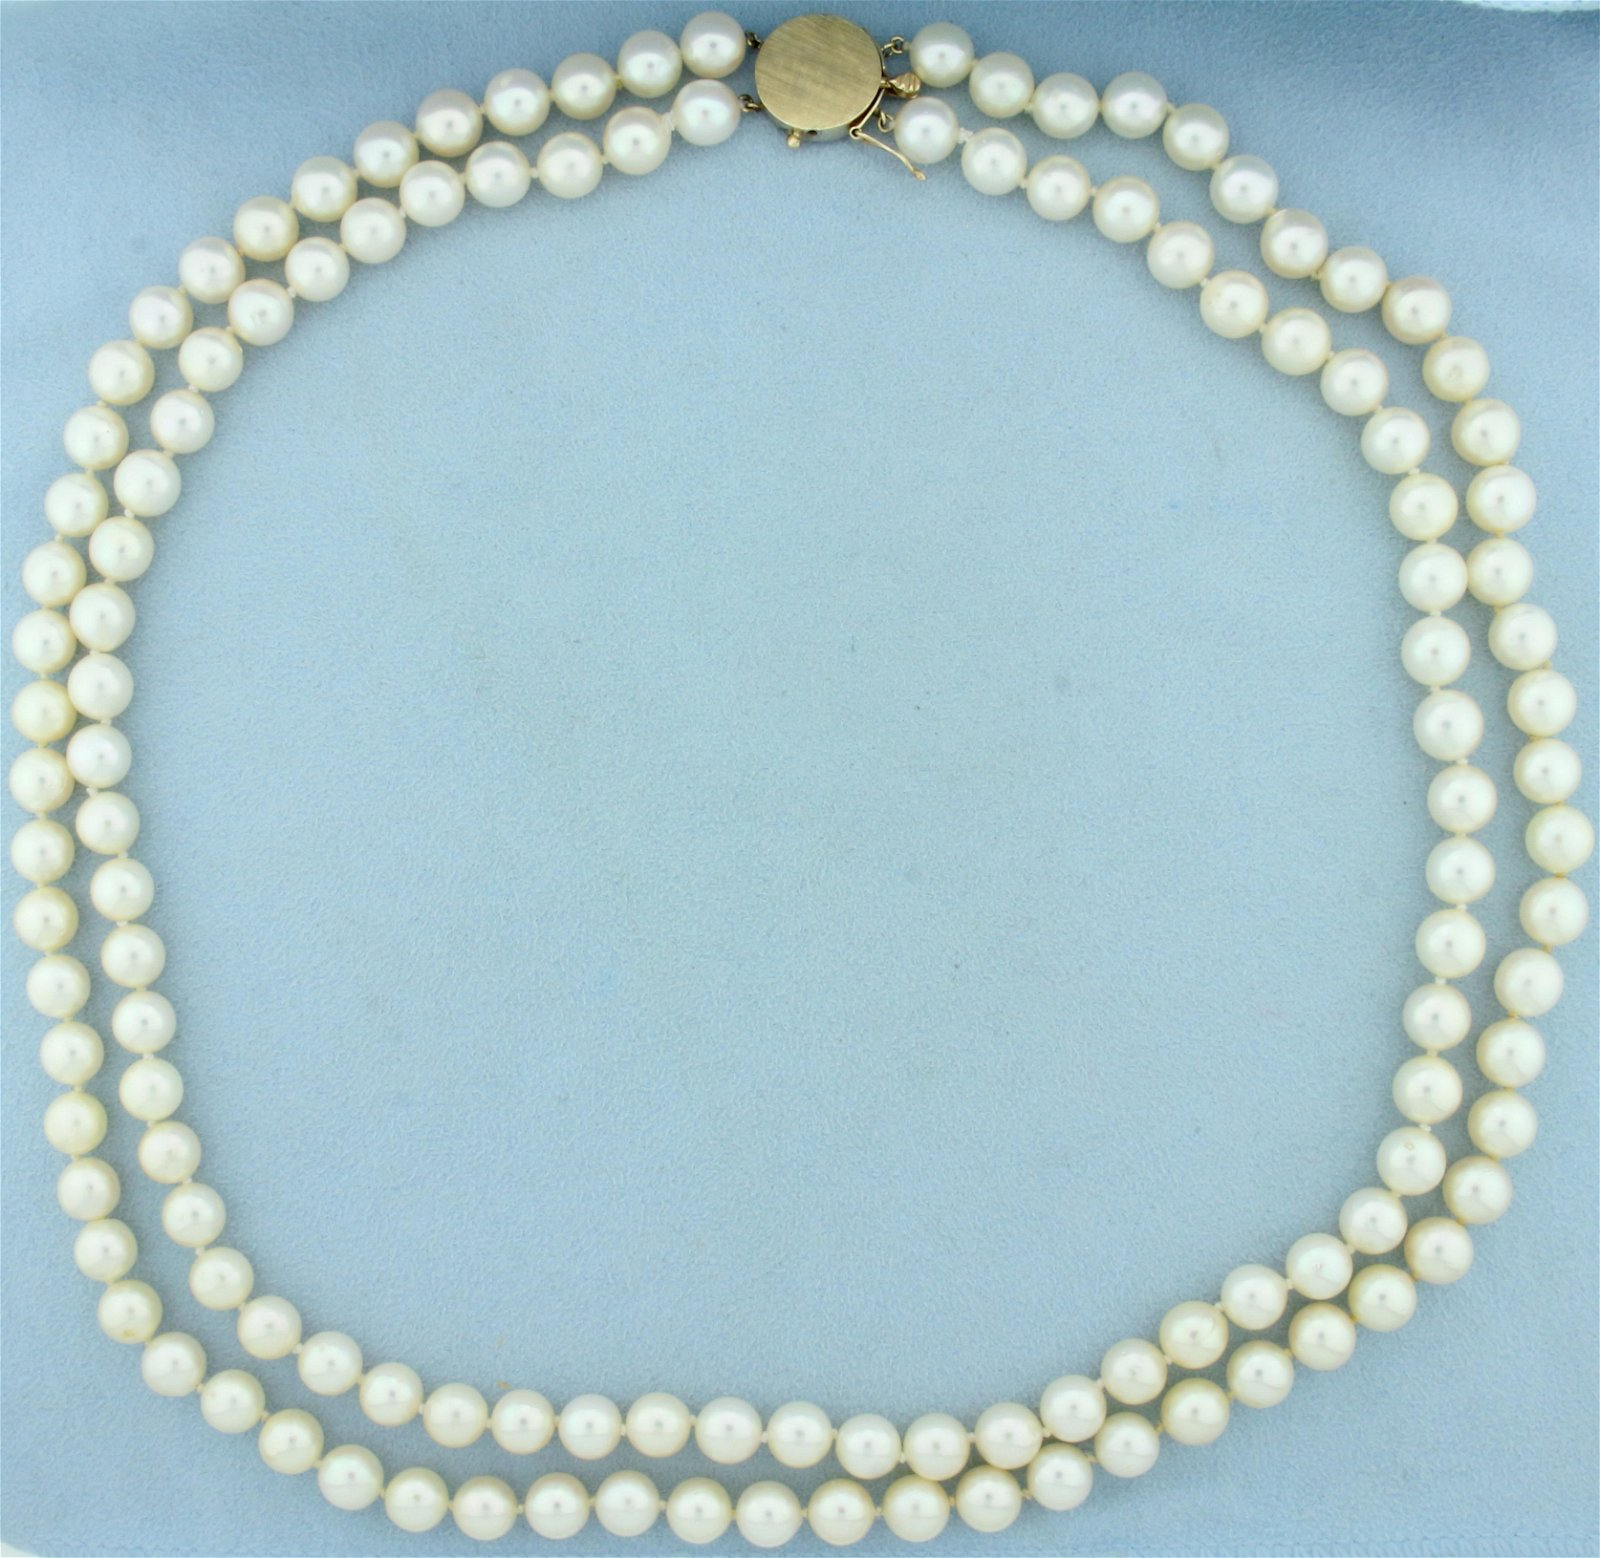 Vintage 22 Inch Double Strand Akoya Pearl Necklace with